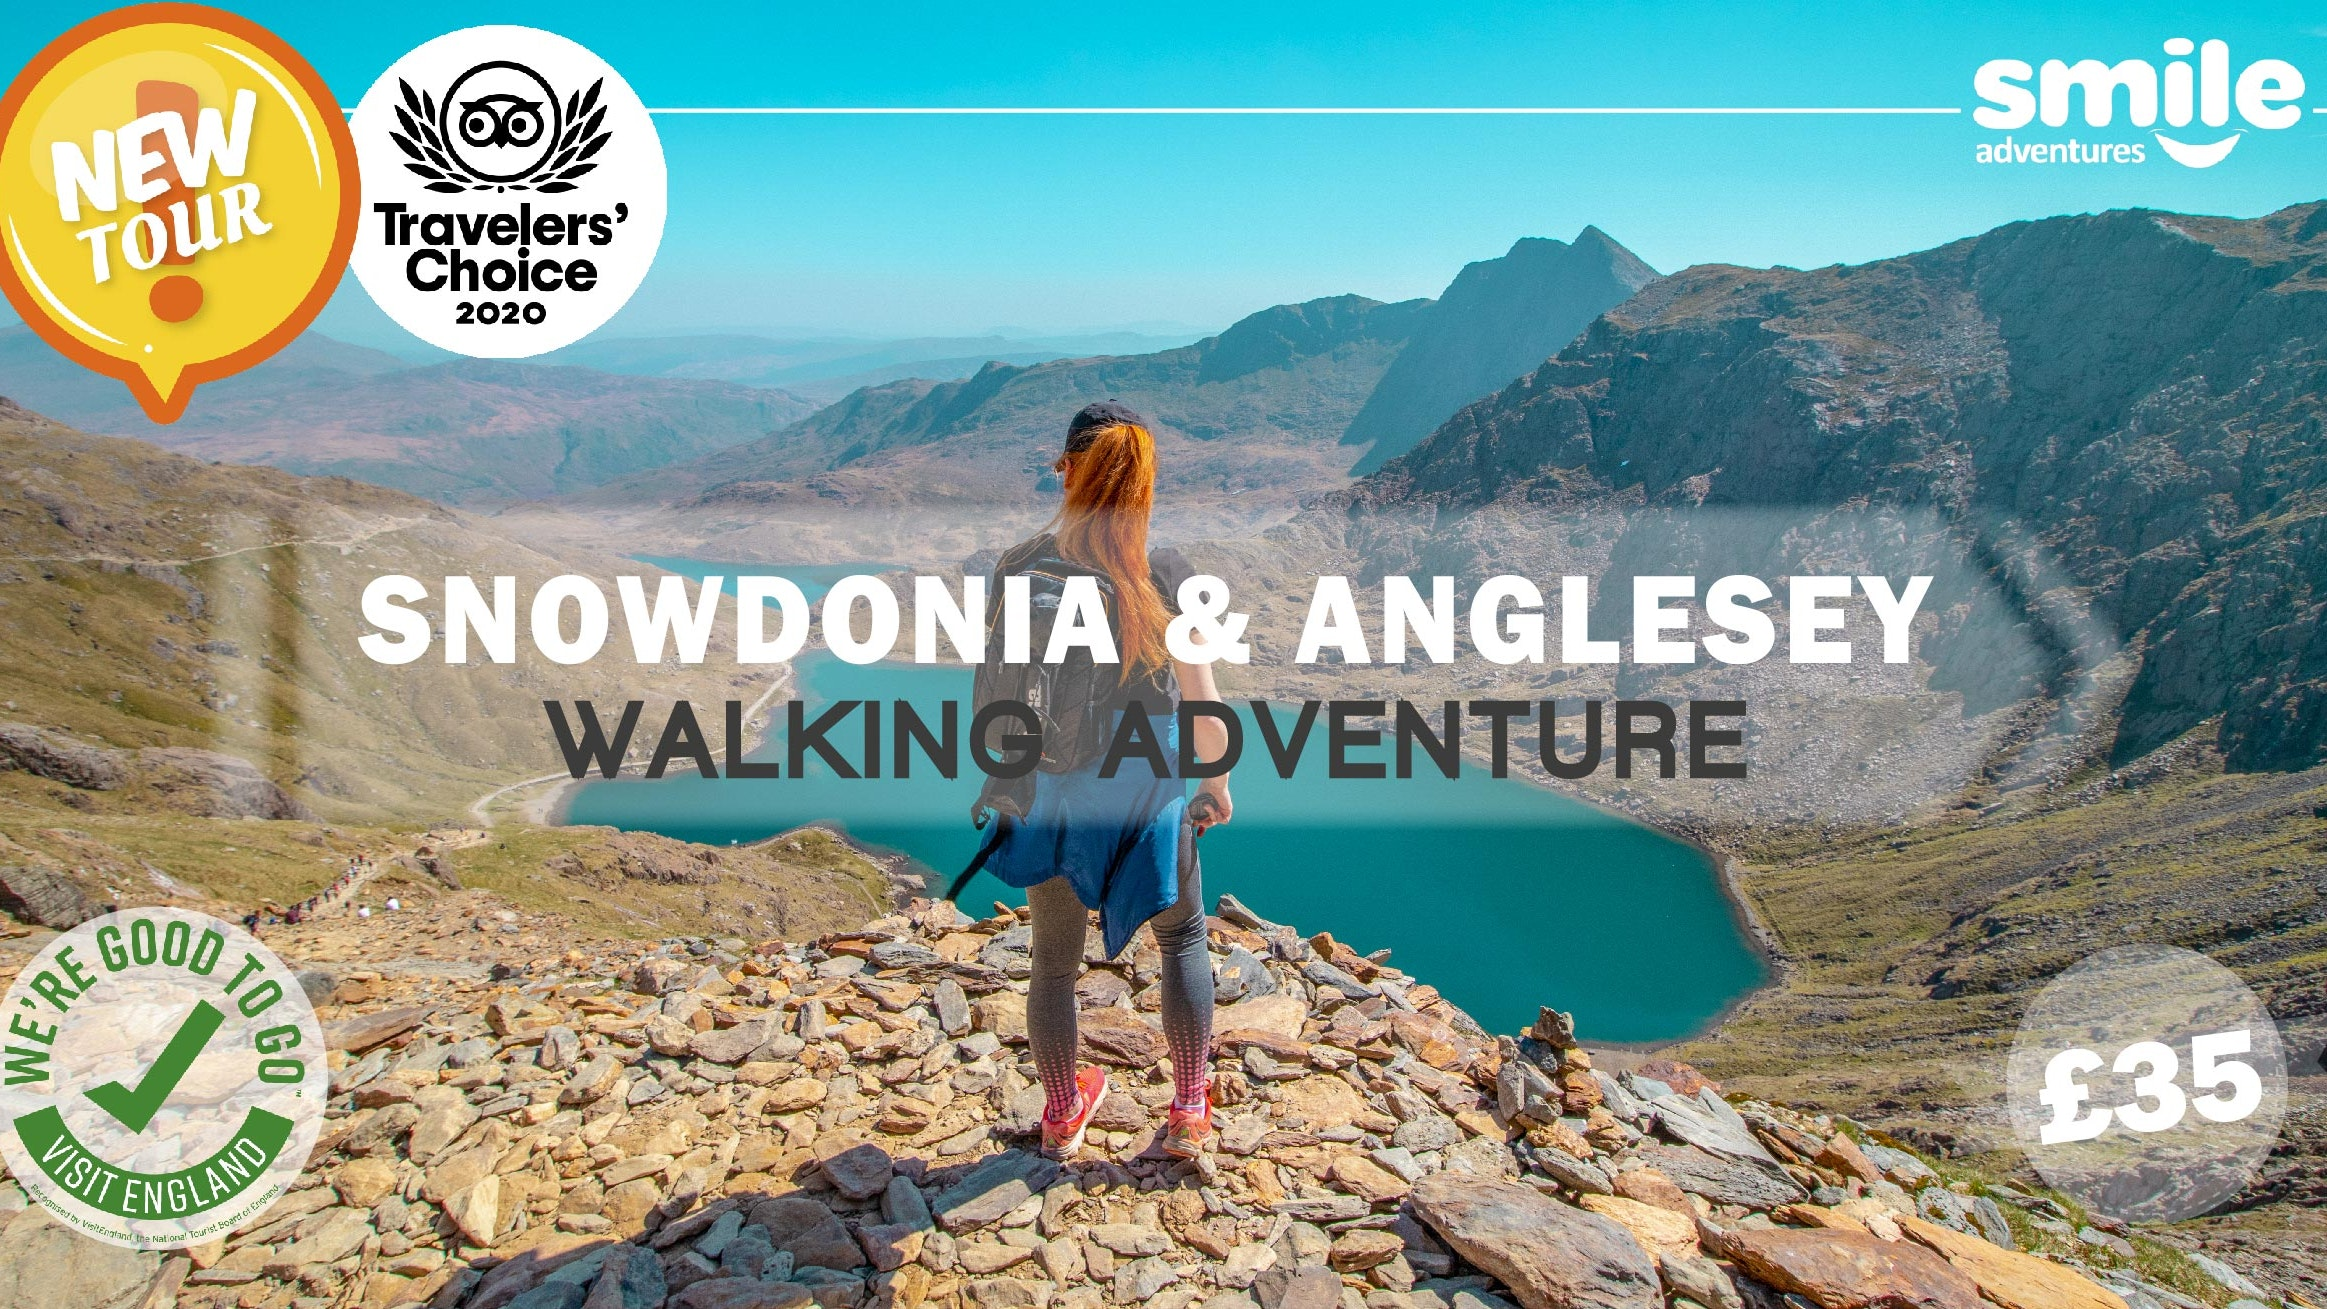 Snowdonia & Anglesey Walking Adventure – From Manchester